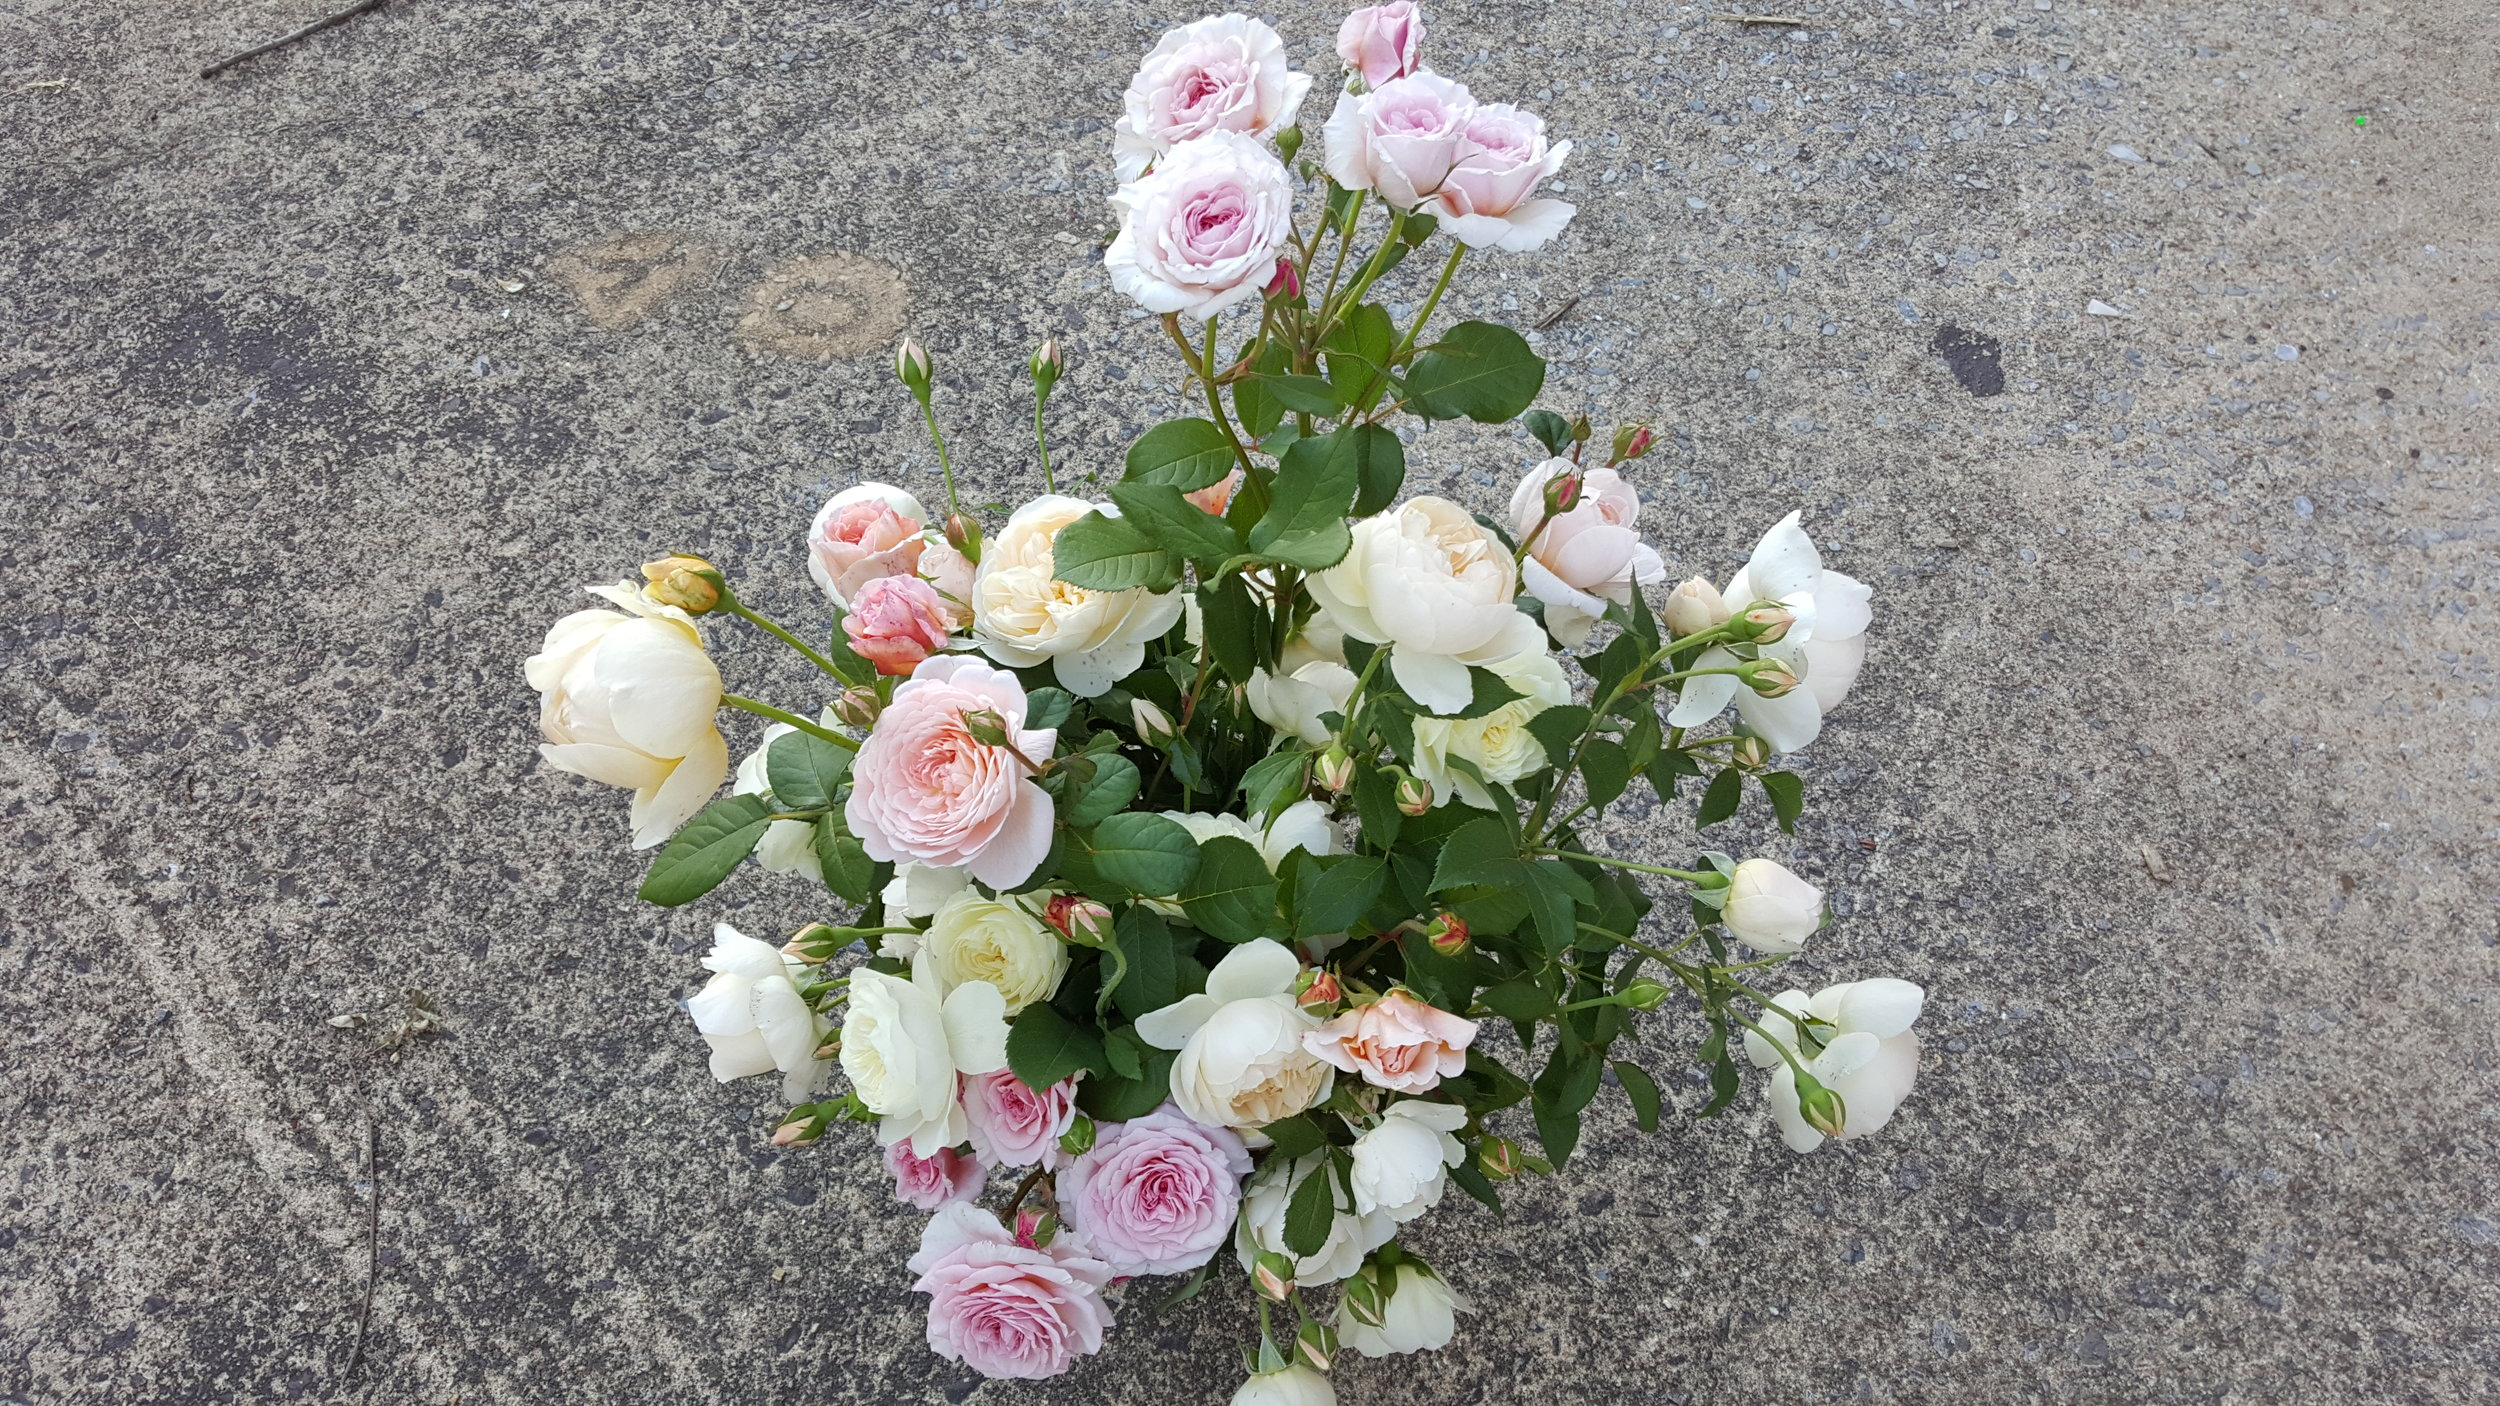 Garden Roses - Even just a few of these beauties will elevate a design!